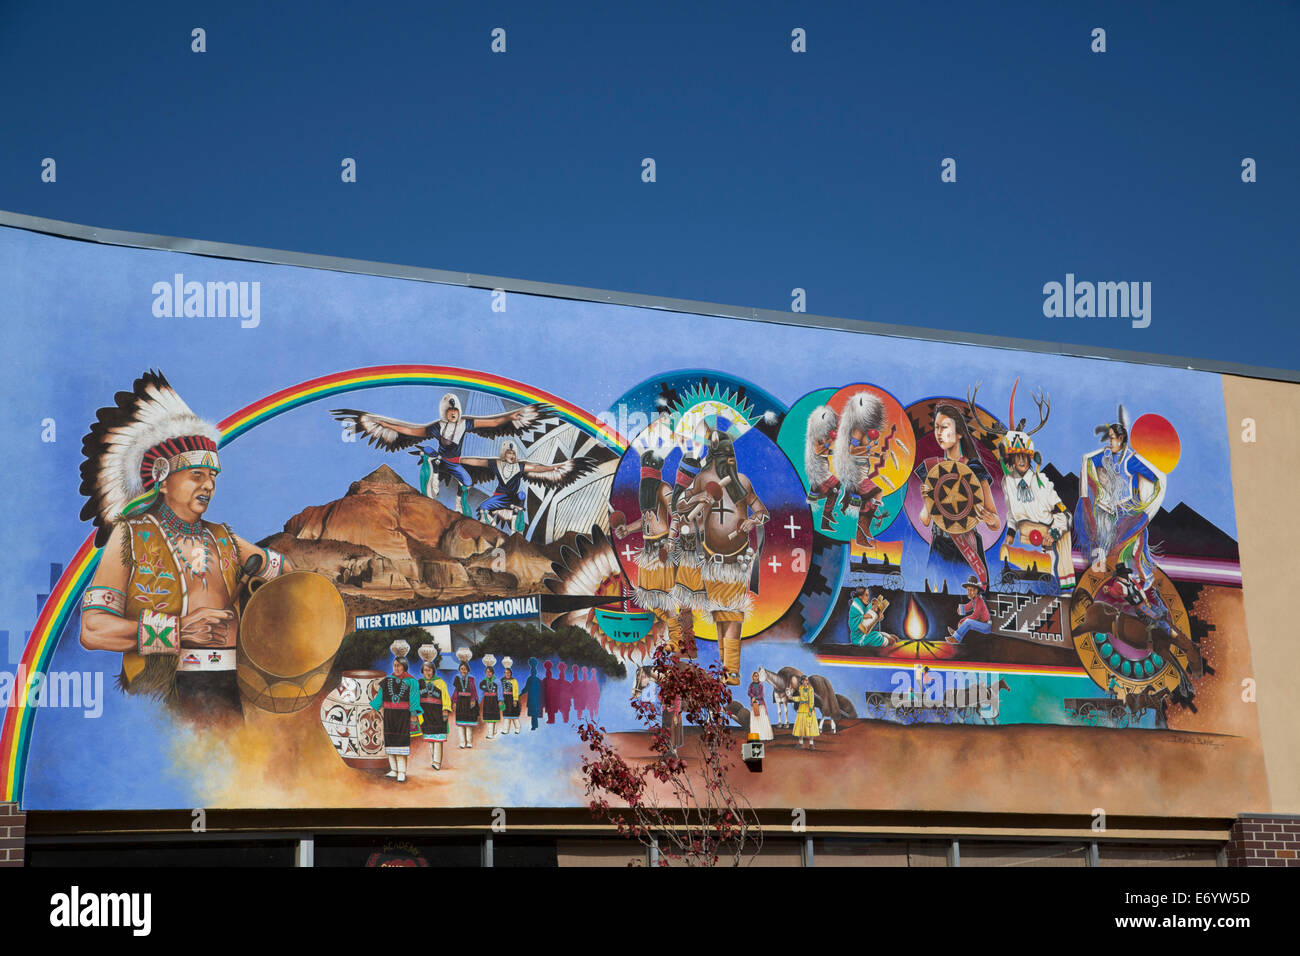 USA, New Mexico, Gallop, located on the Ceremonial Building, 'Ceremonial Mural', Irving Bahe (muralist), - Stock Image